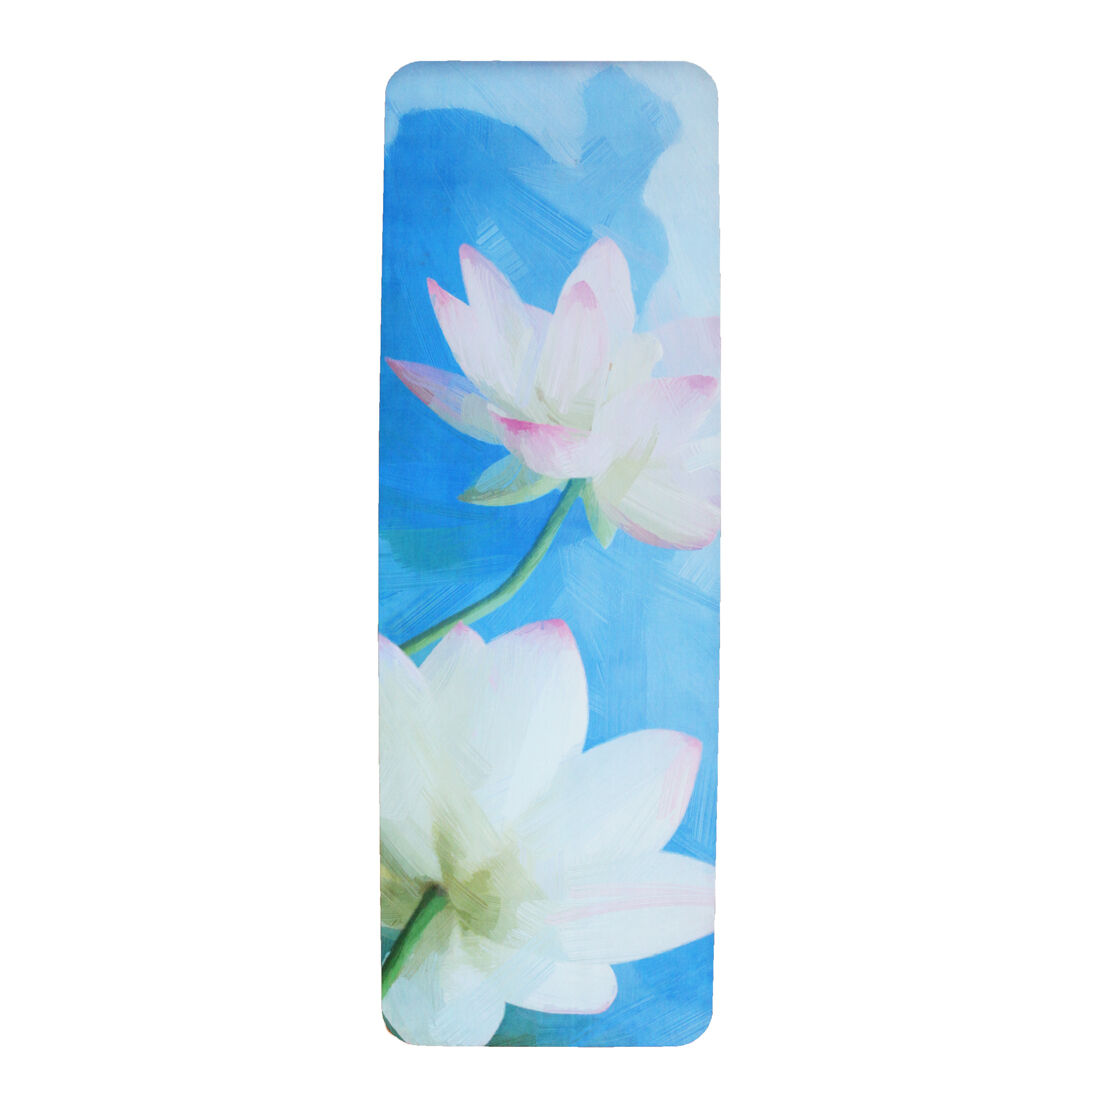 Premium Yoga Mat – Expanding Lotus, Eco Friendly